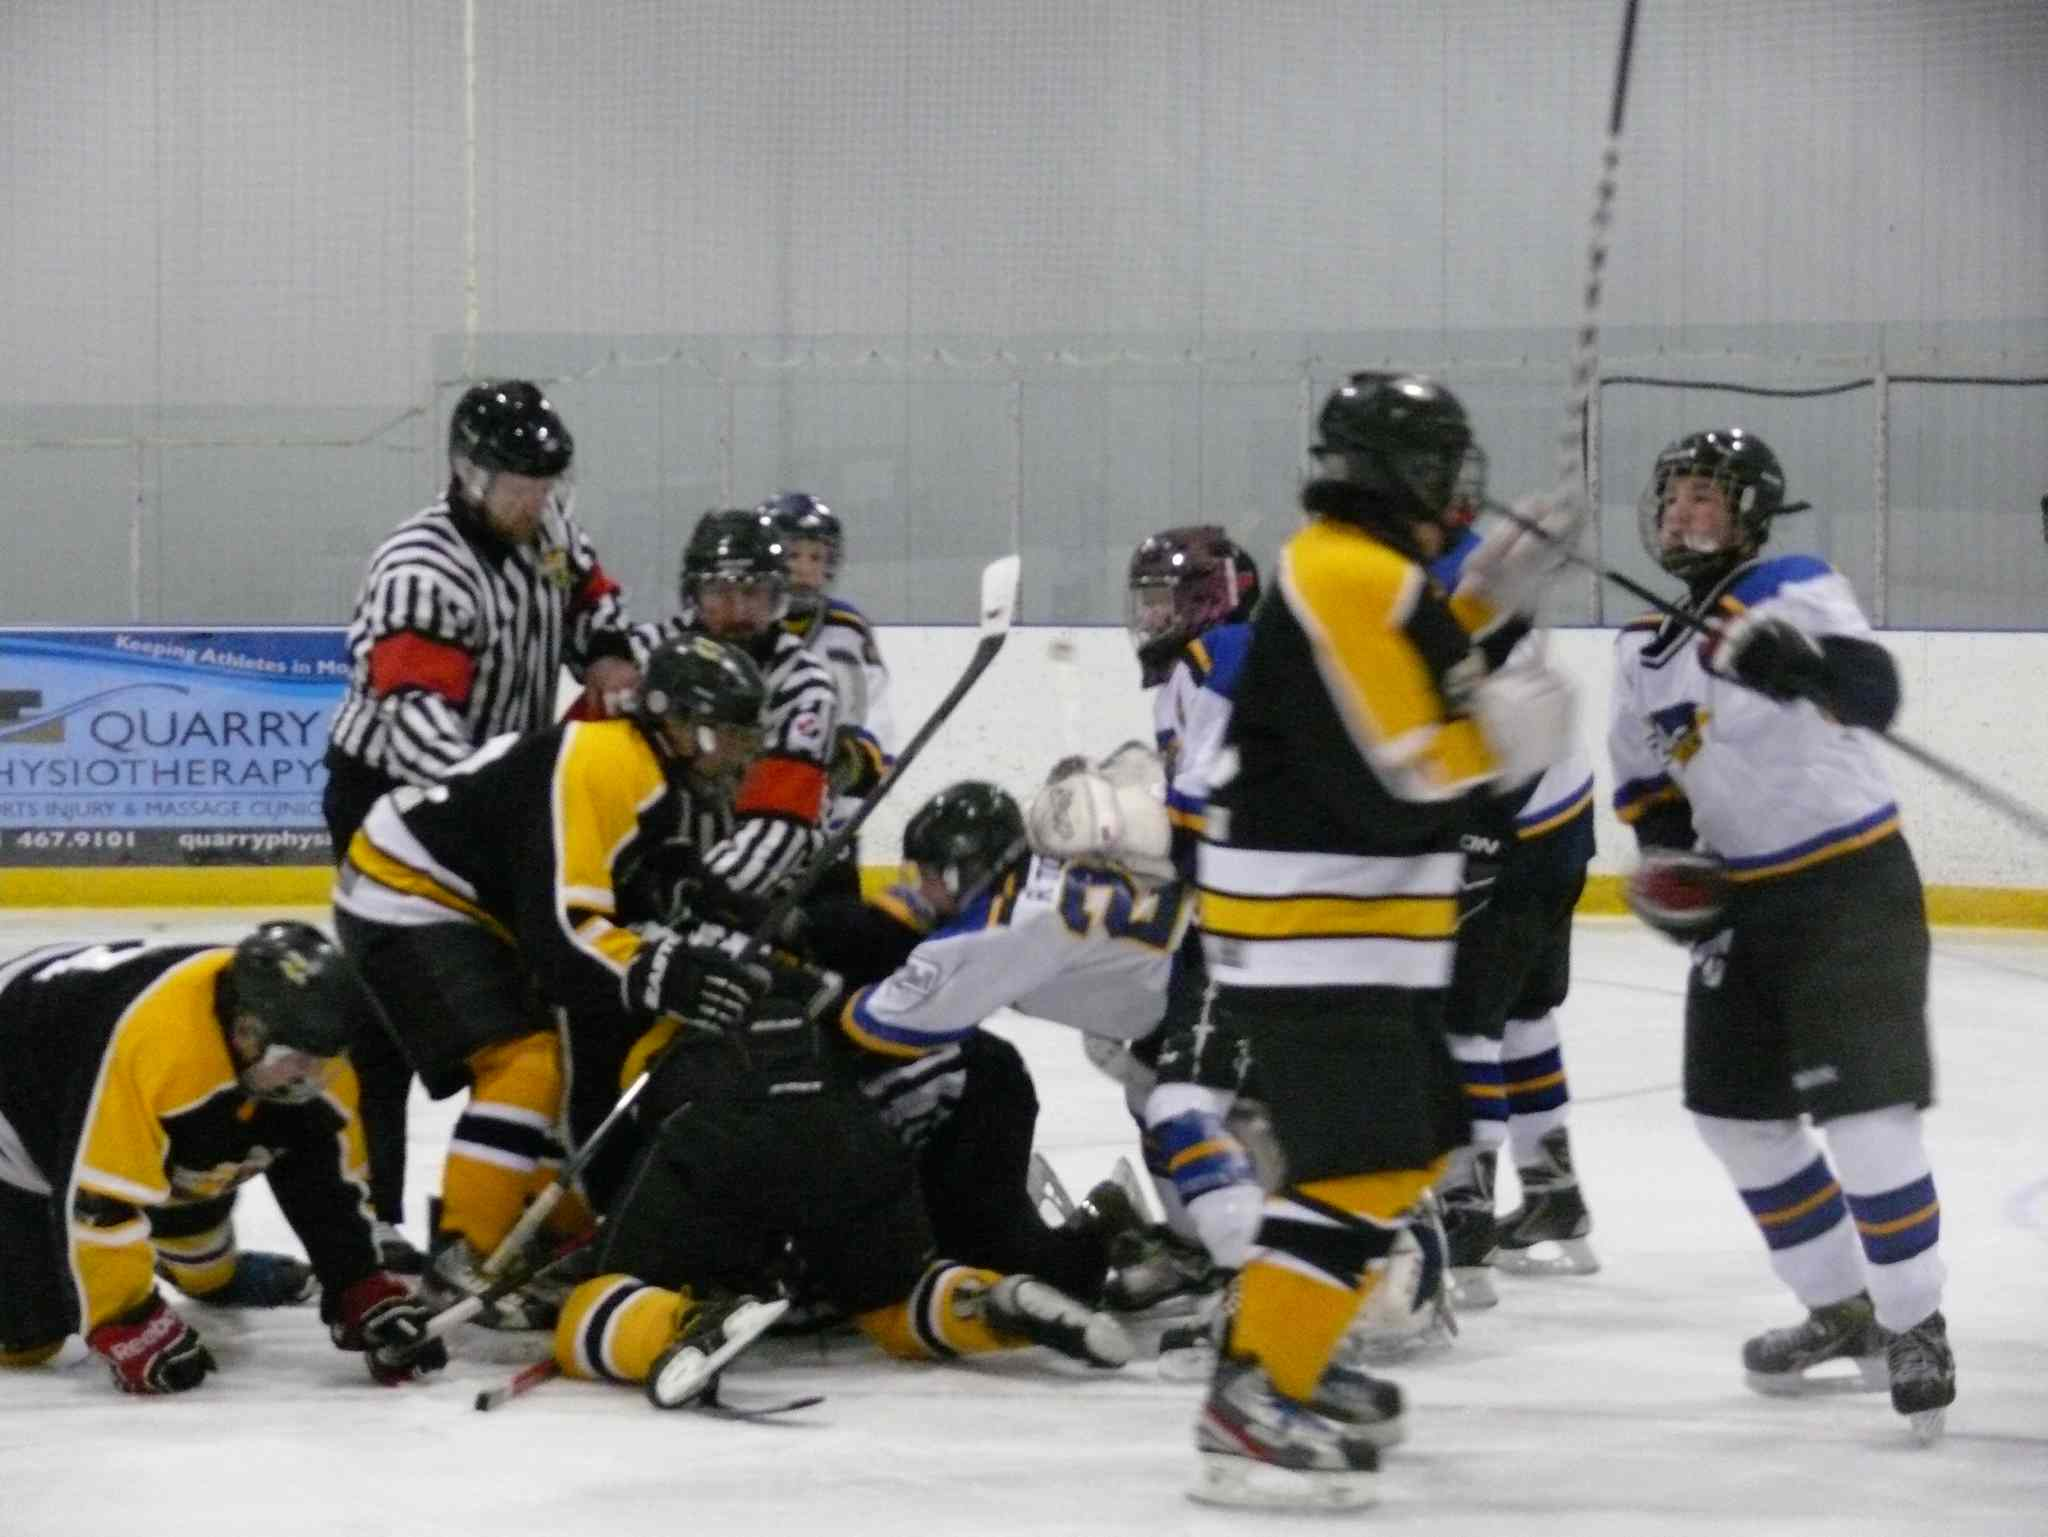 An image from video of a recent on-ice altercation in which an official was assaulted.